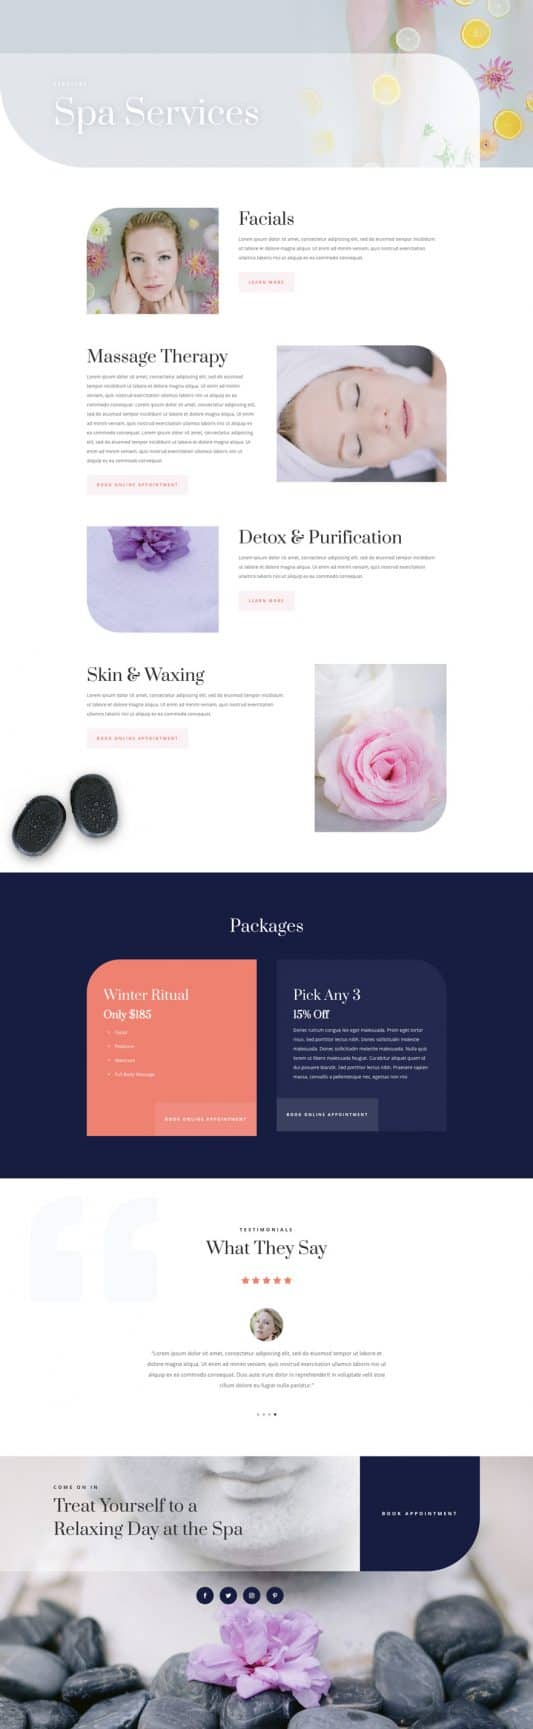 Day Spa Services Page Style 1